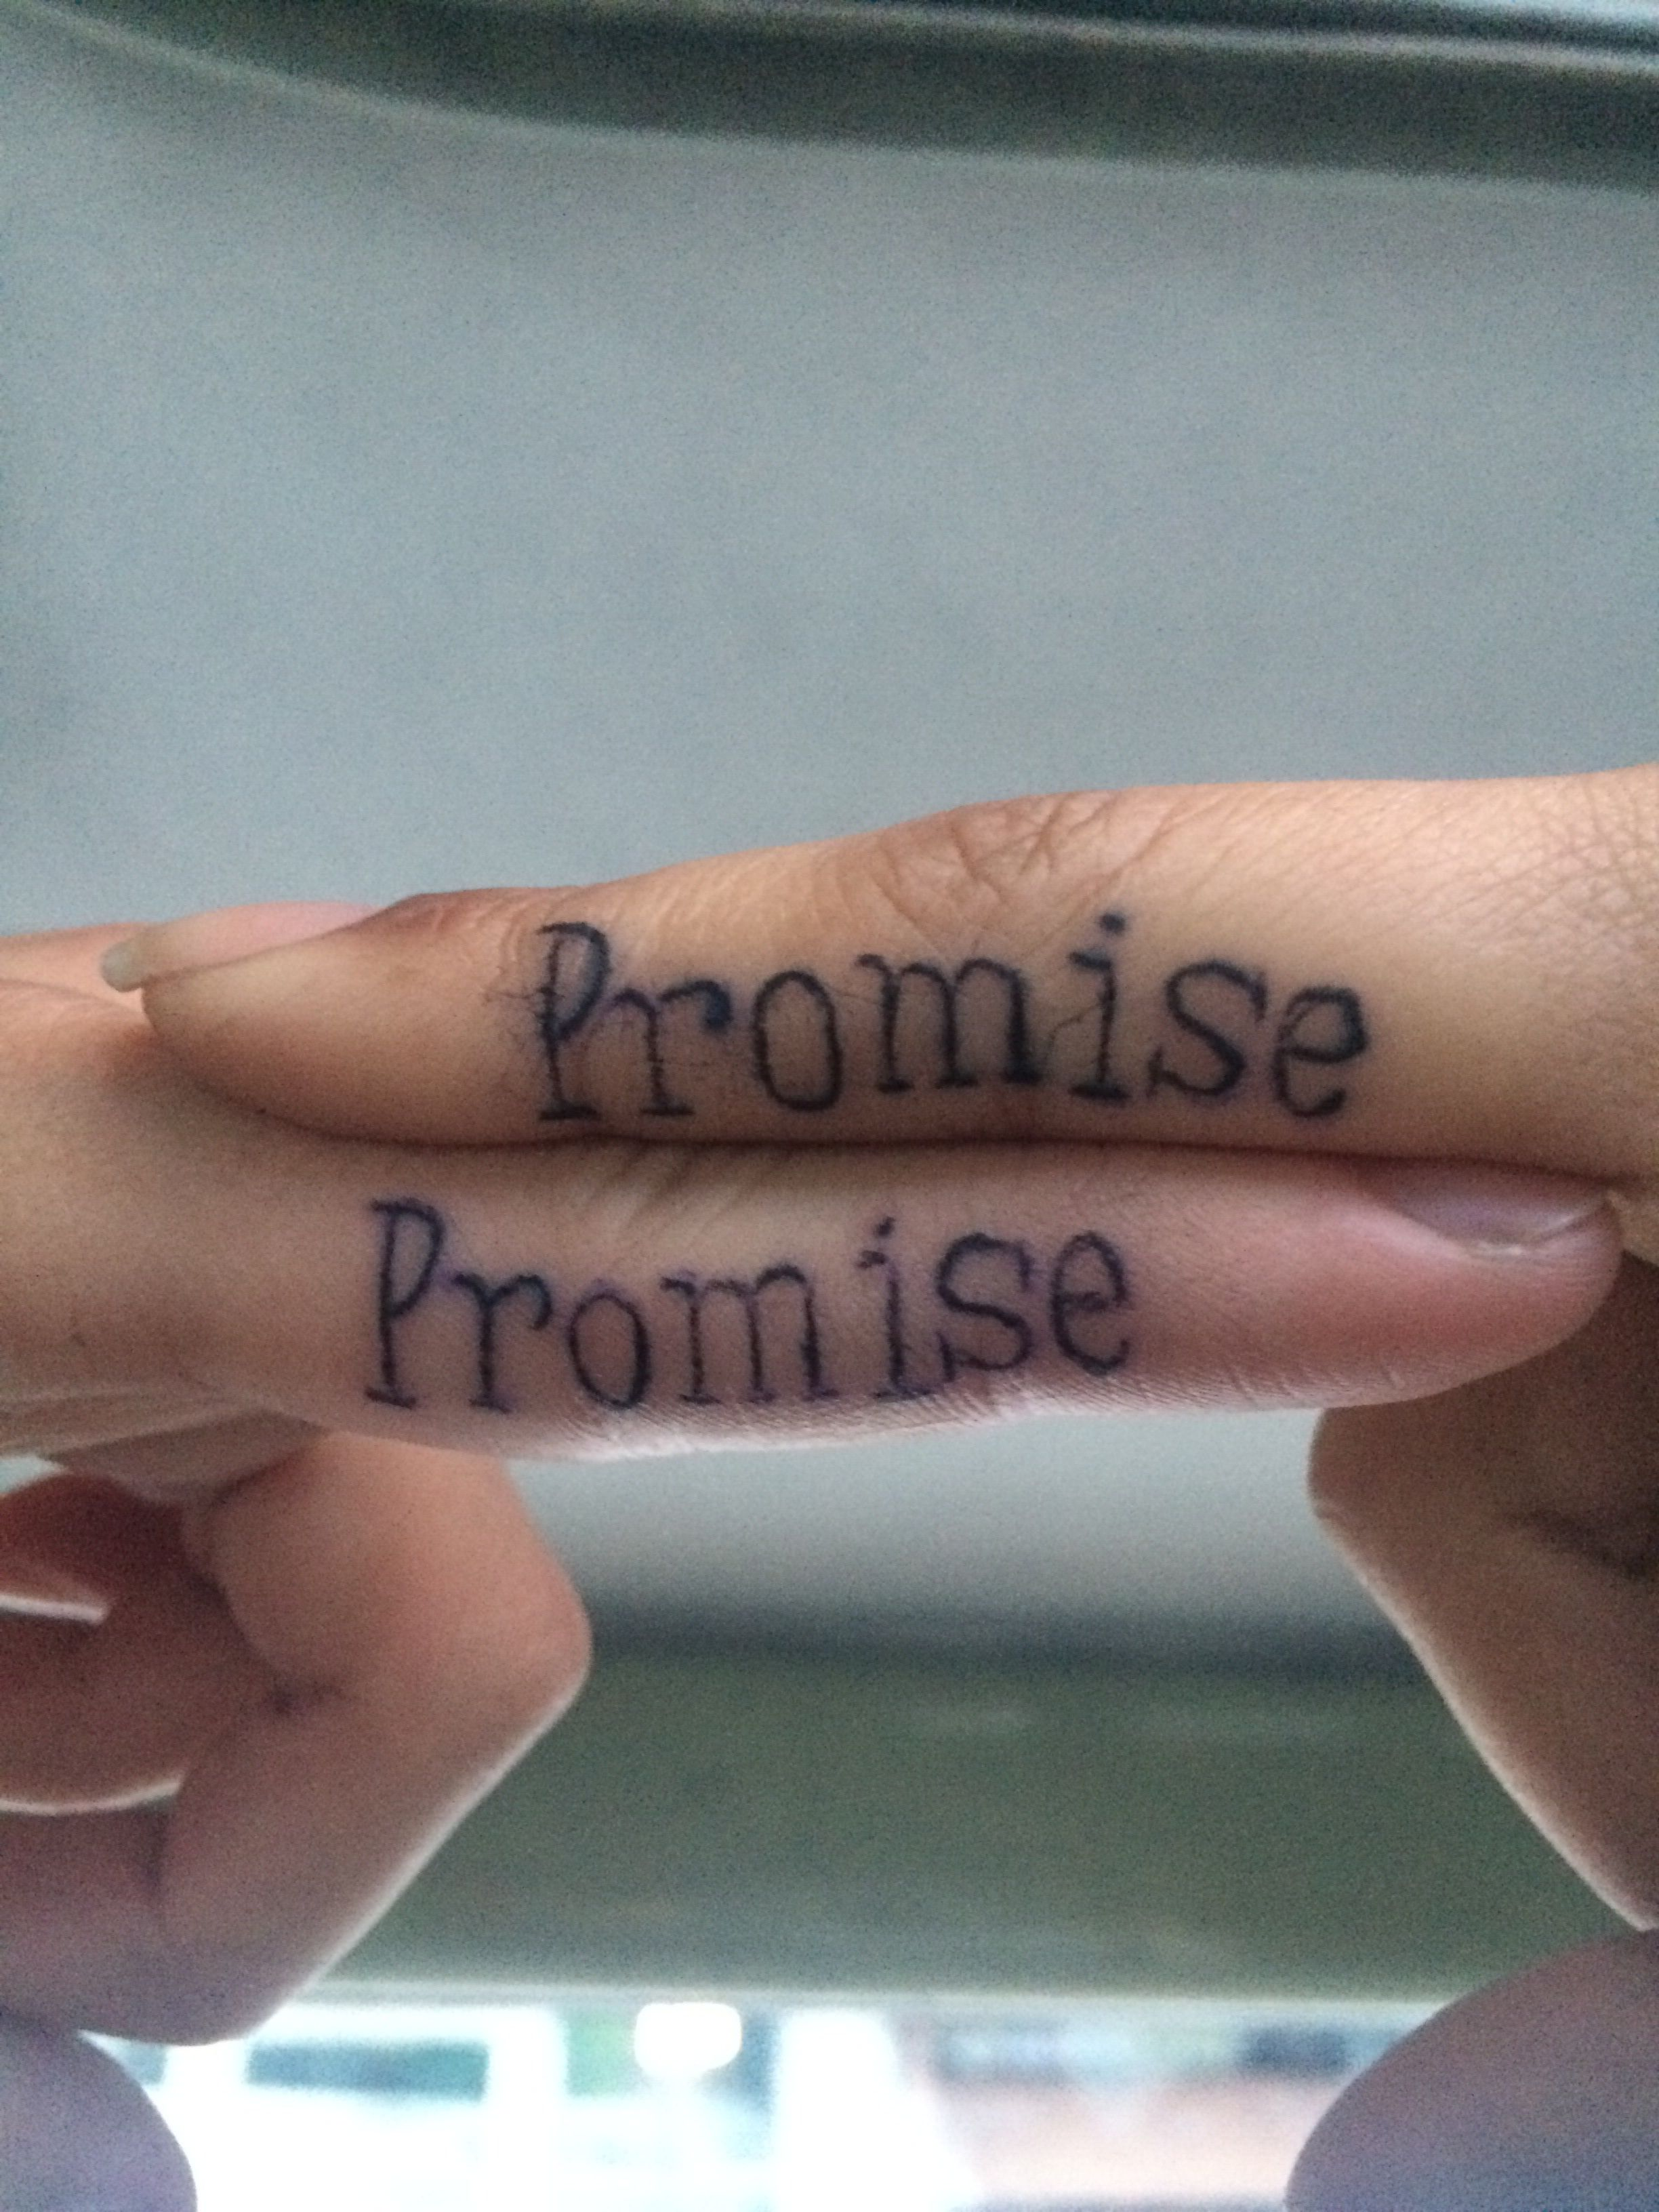 Tattoo name cover up ideas on wrist promise  tattoos  pinterest  tattoo and tattoo